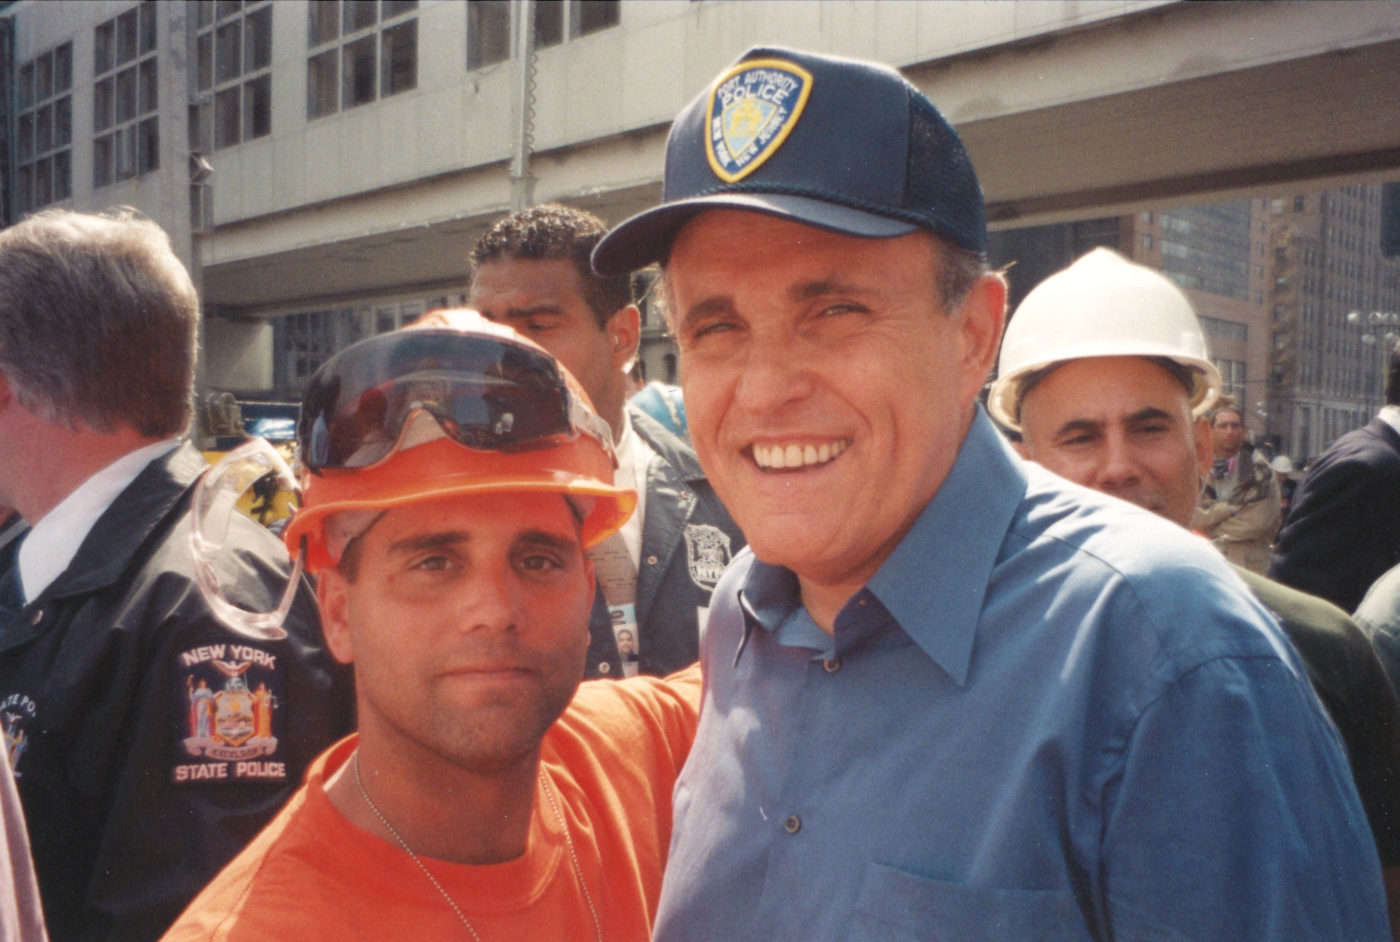 Rudy Guliani and an Unknown Worker Take a Photo at Ground Zero